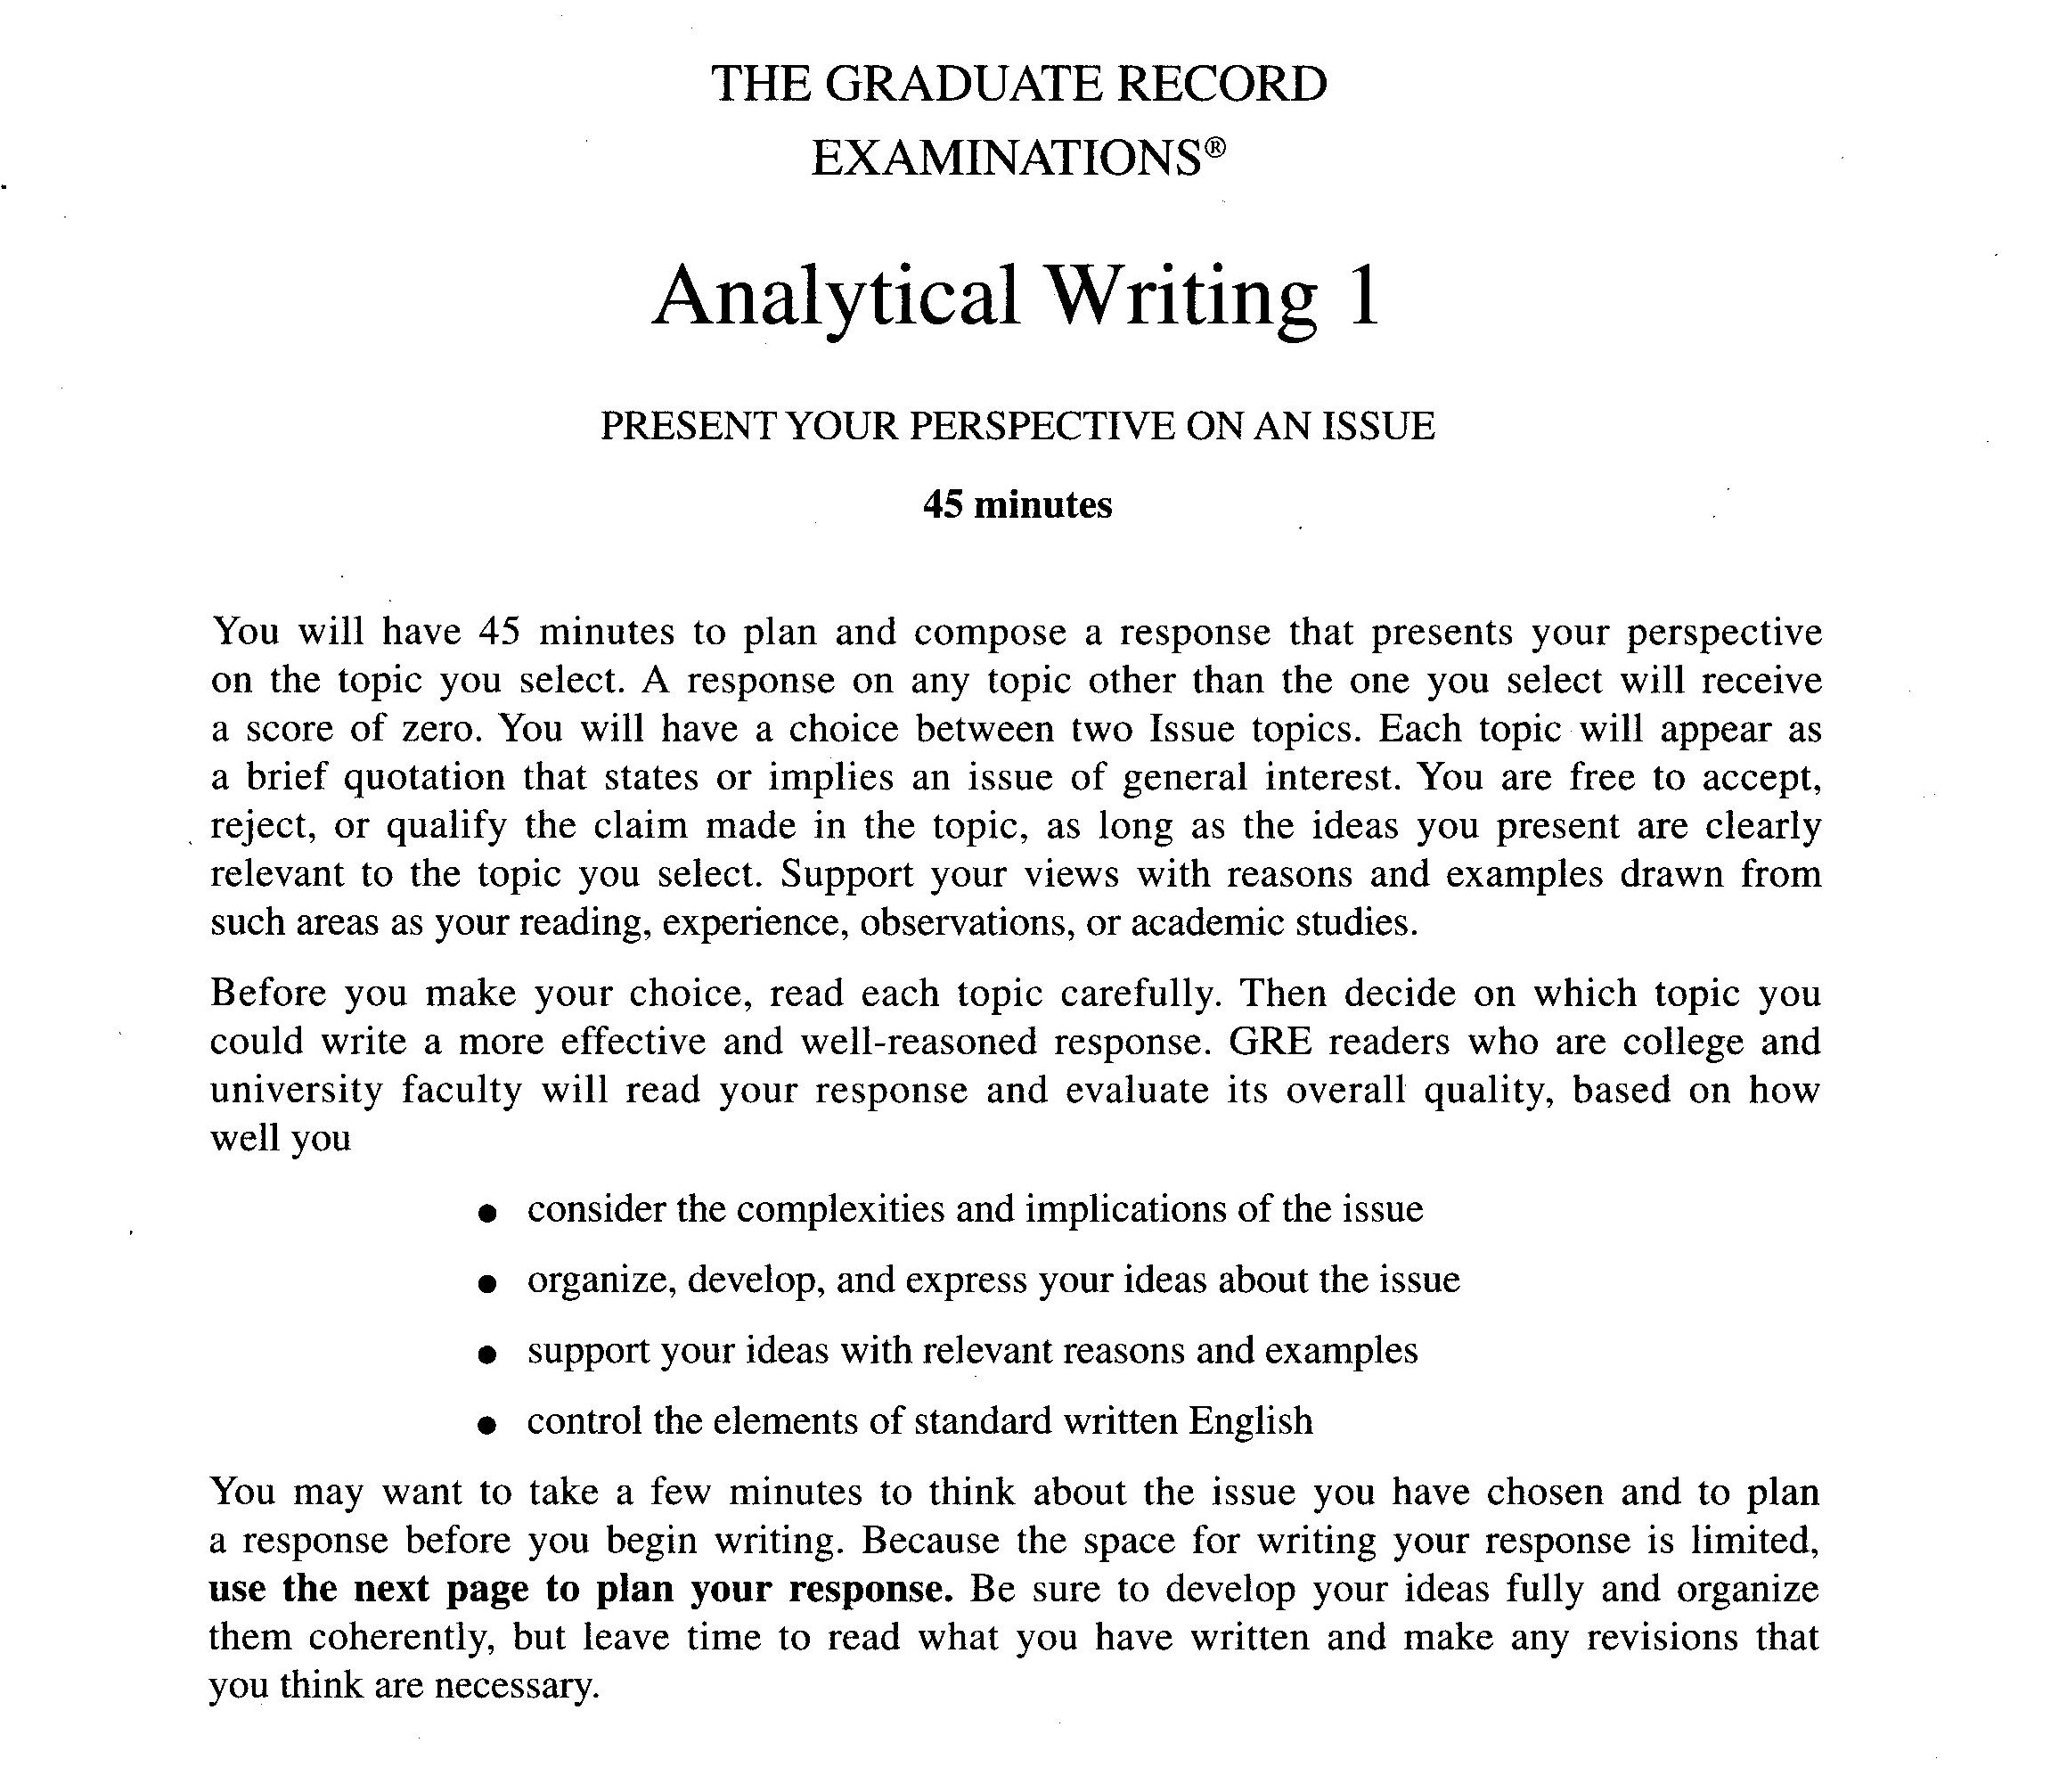 005 Analytical20writing20issue20task20directions20for20gre201 Essay Example Gre Argument Frightening Template Full